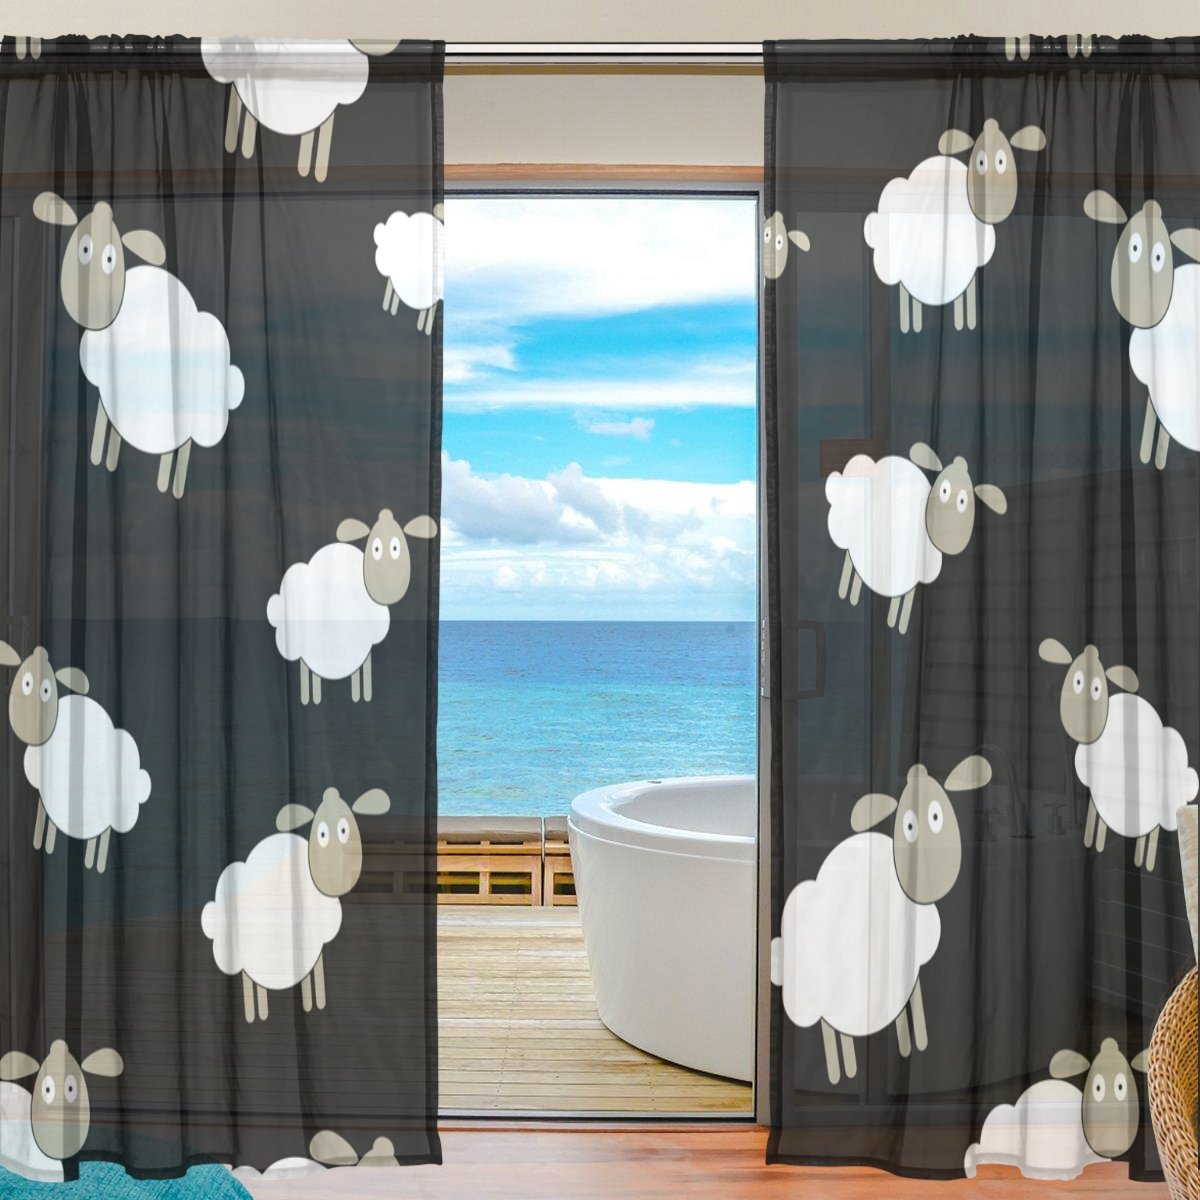 SEULIFE Window Sheer Curtain, Abstract Animal Lamb Sheep Pattern Voile Curtain Drapes for Door Kitchen Living Room Bedroom 55x78 inches 2 Panels